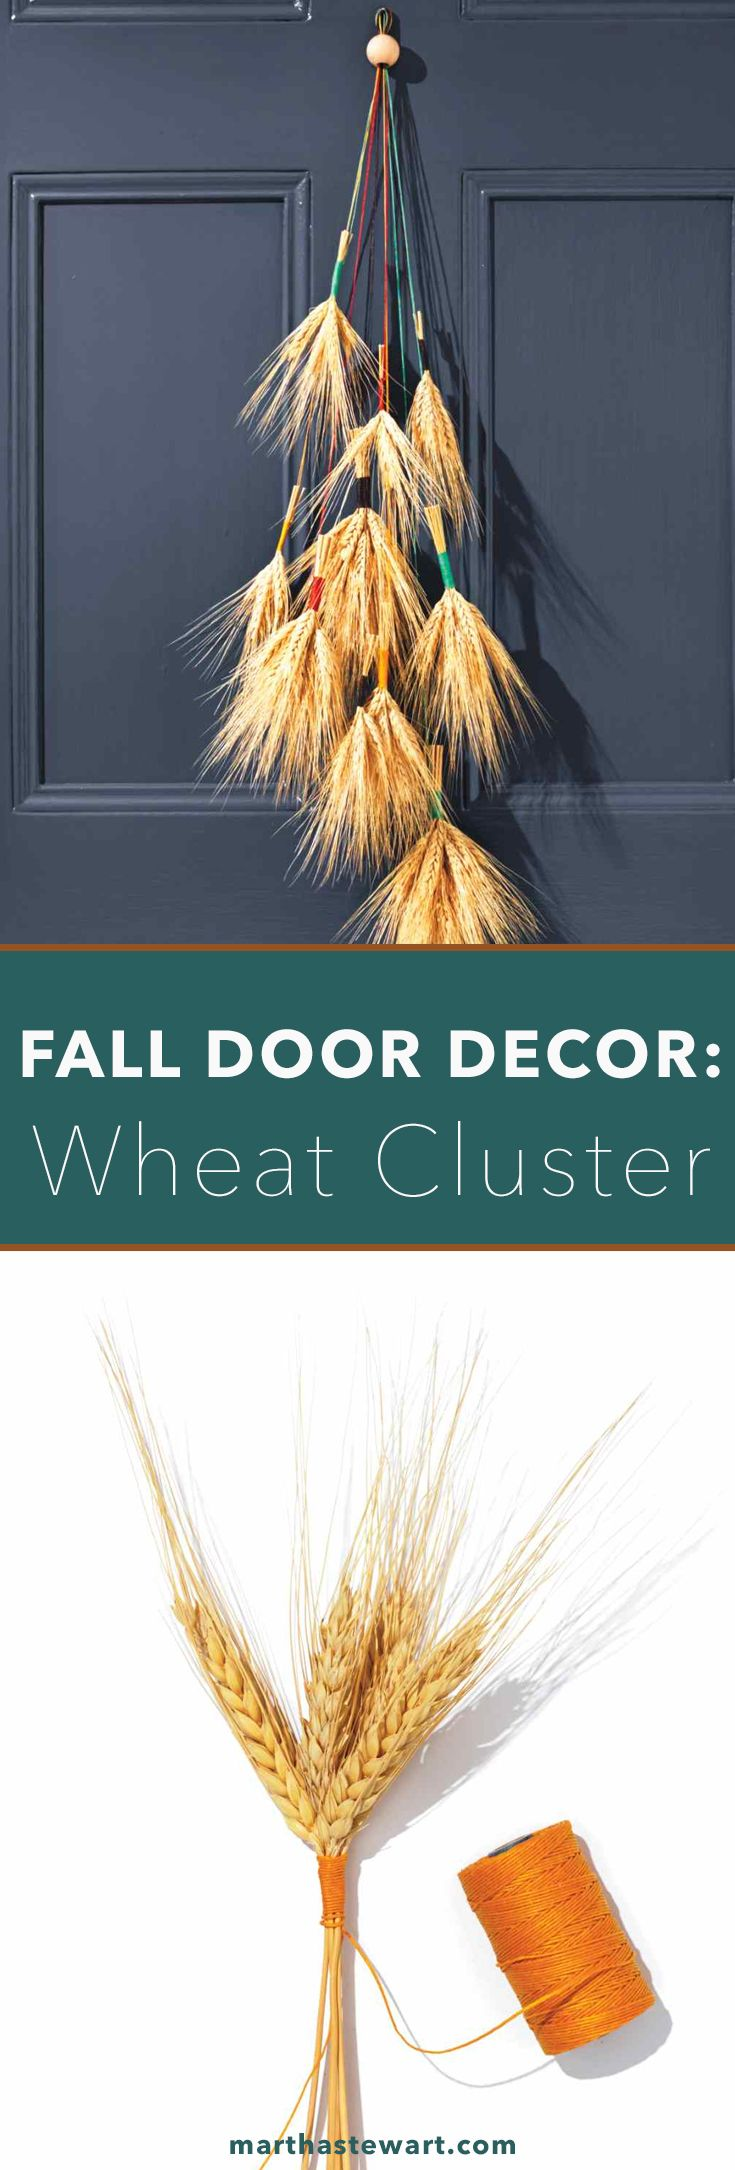 Fall Door Decor: Wheat Cluster